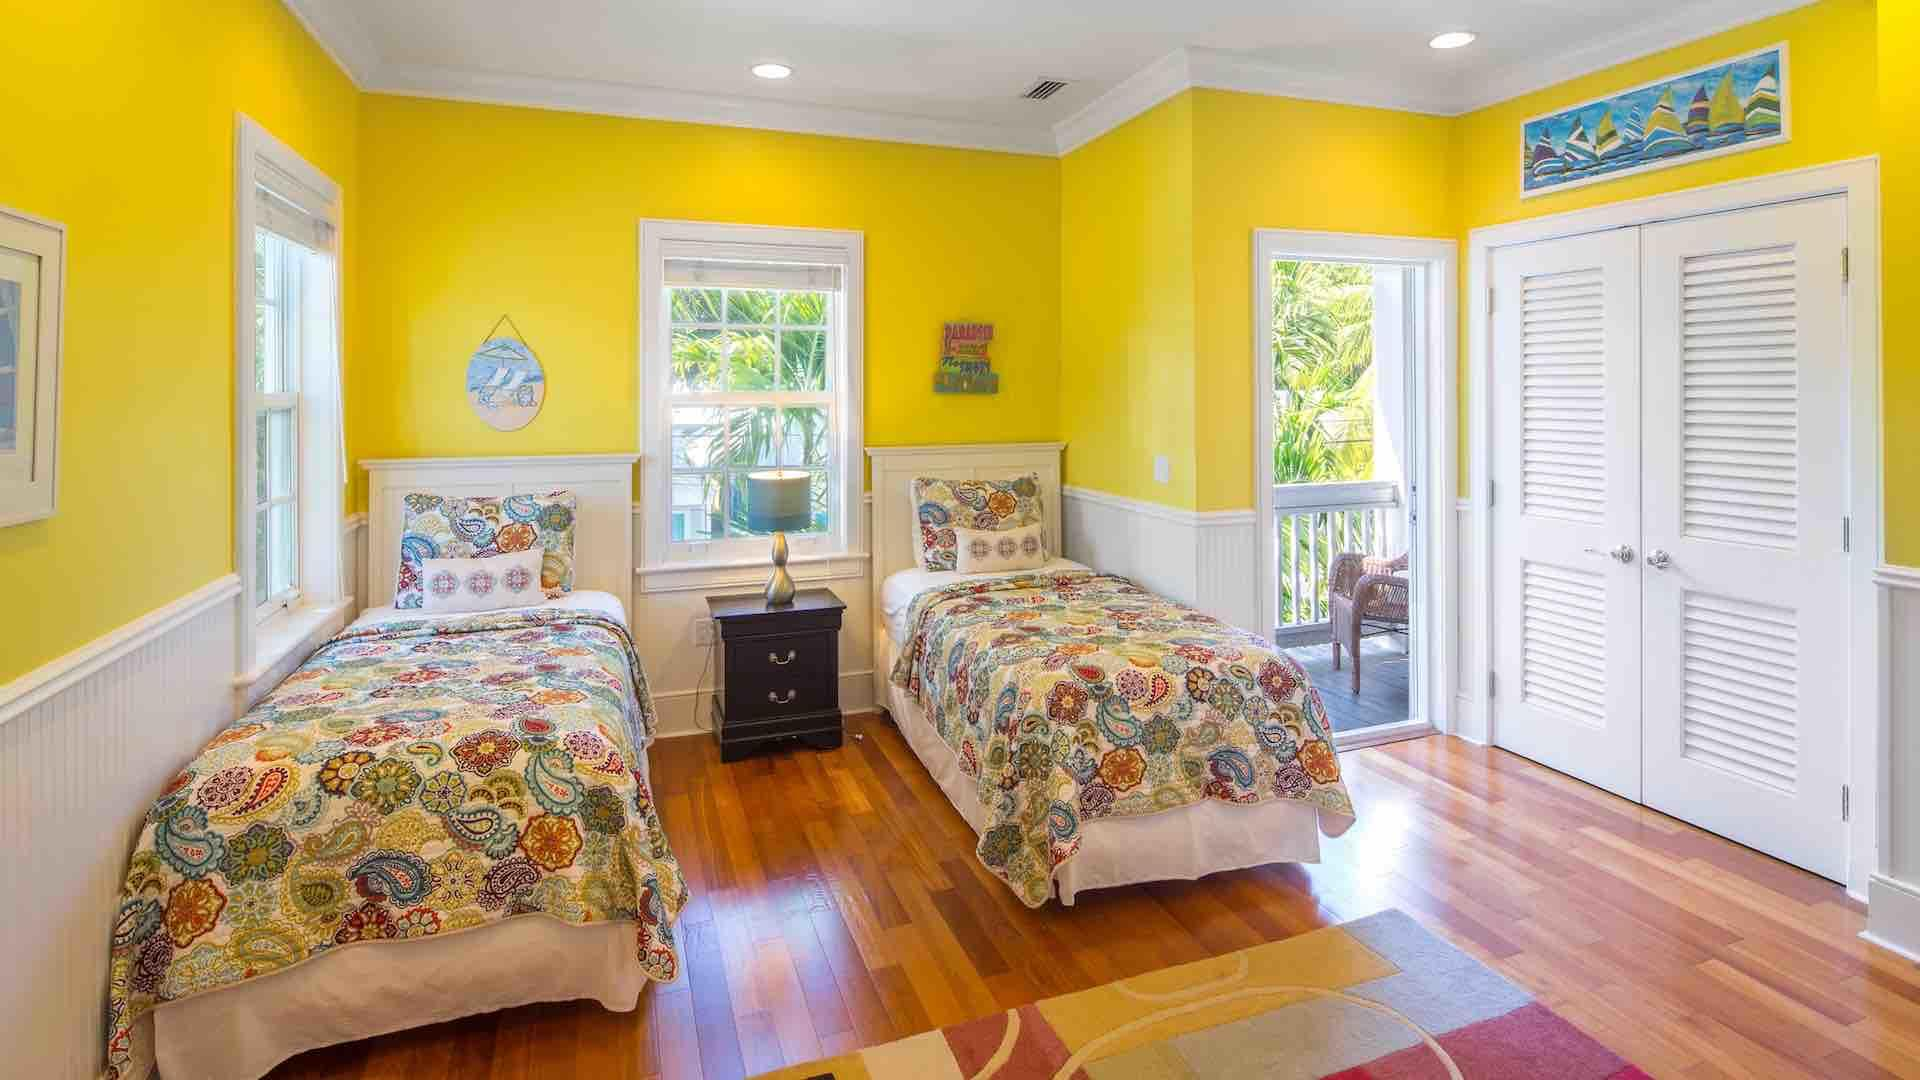 The sixth bedroom has two twin beds that can convert to a King bed upon request...